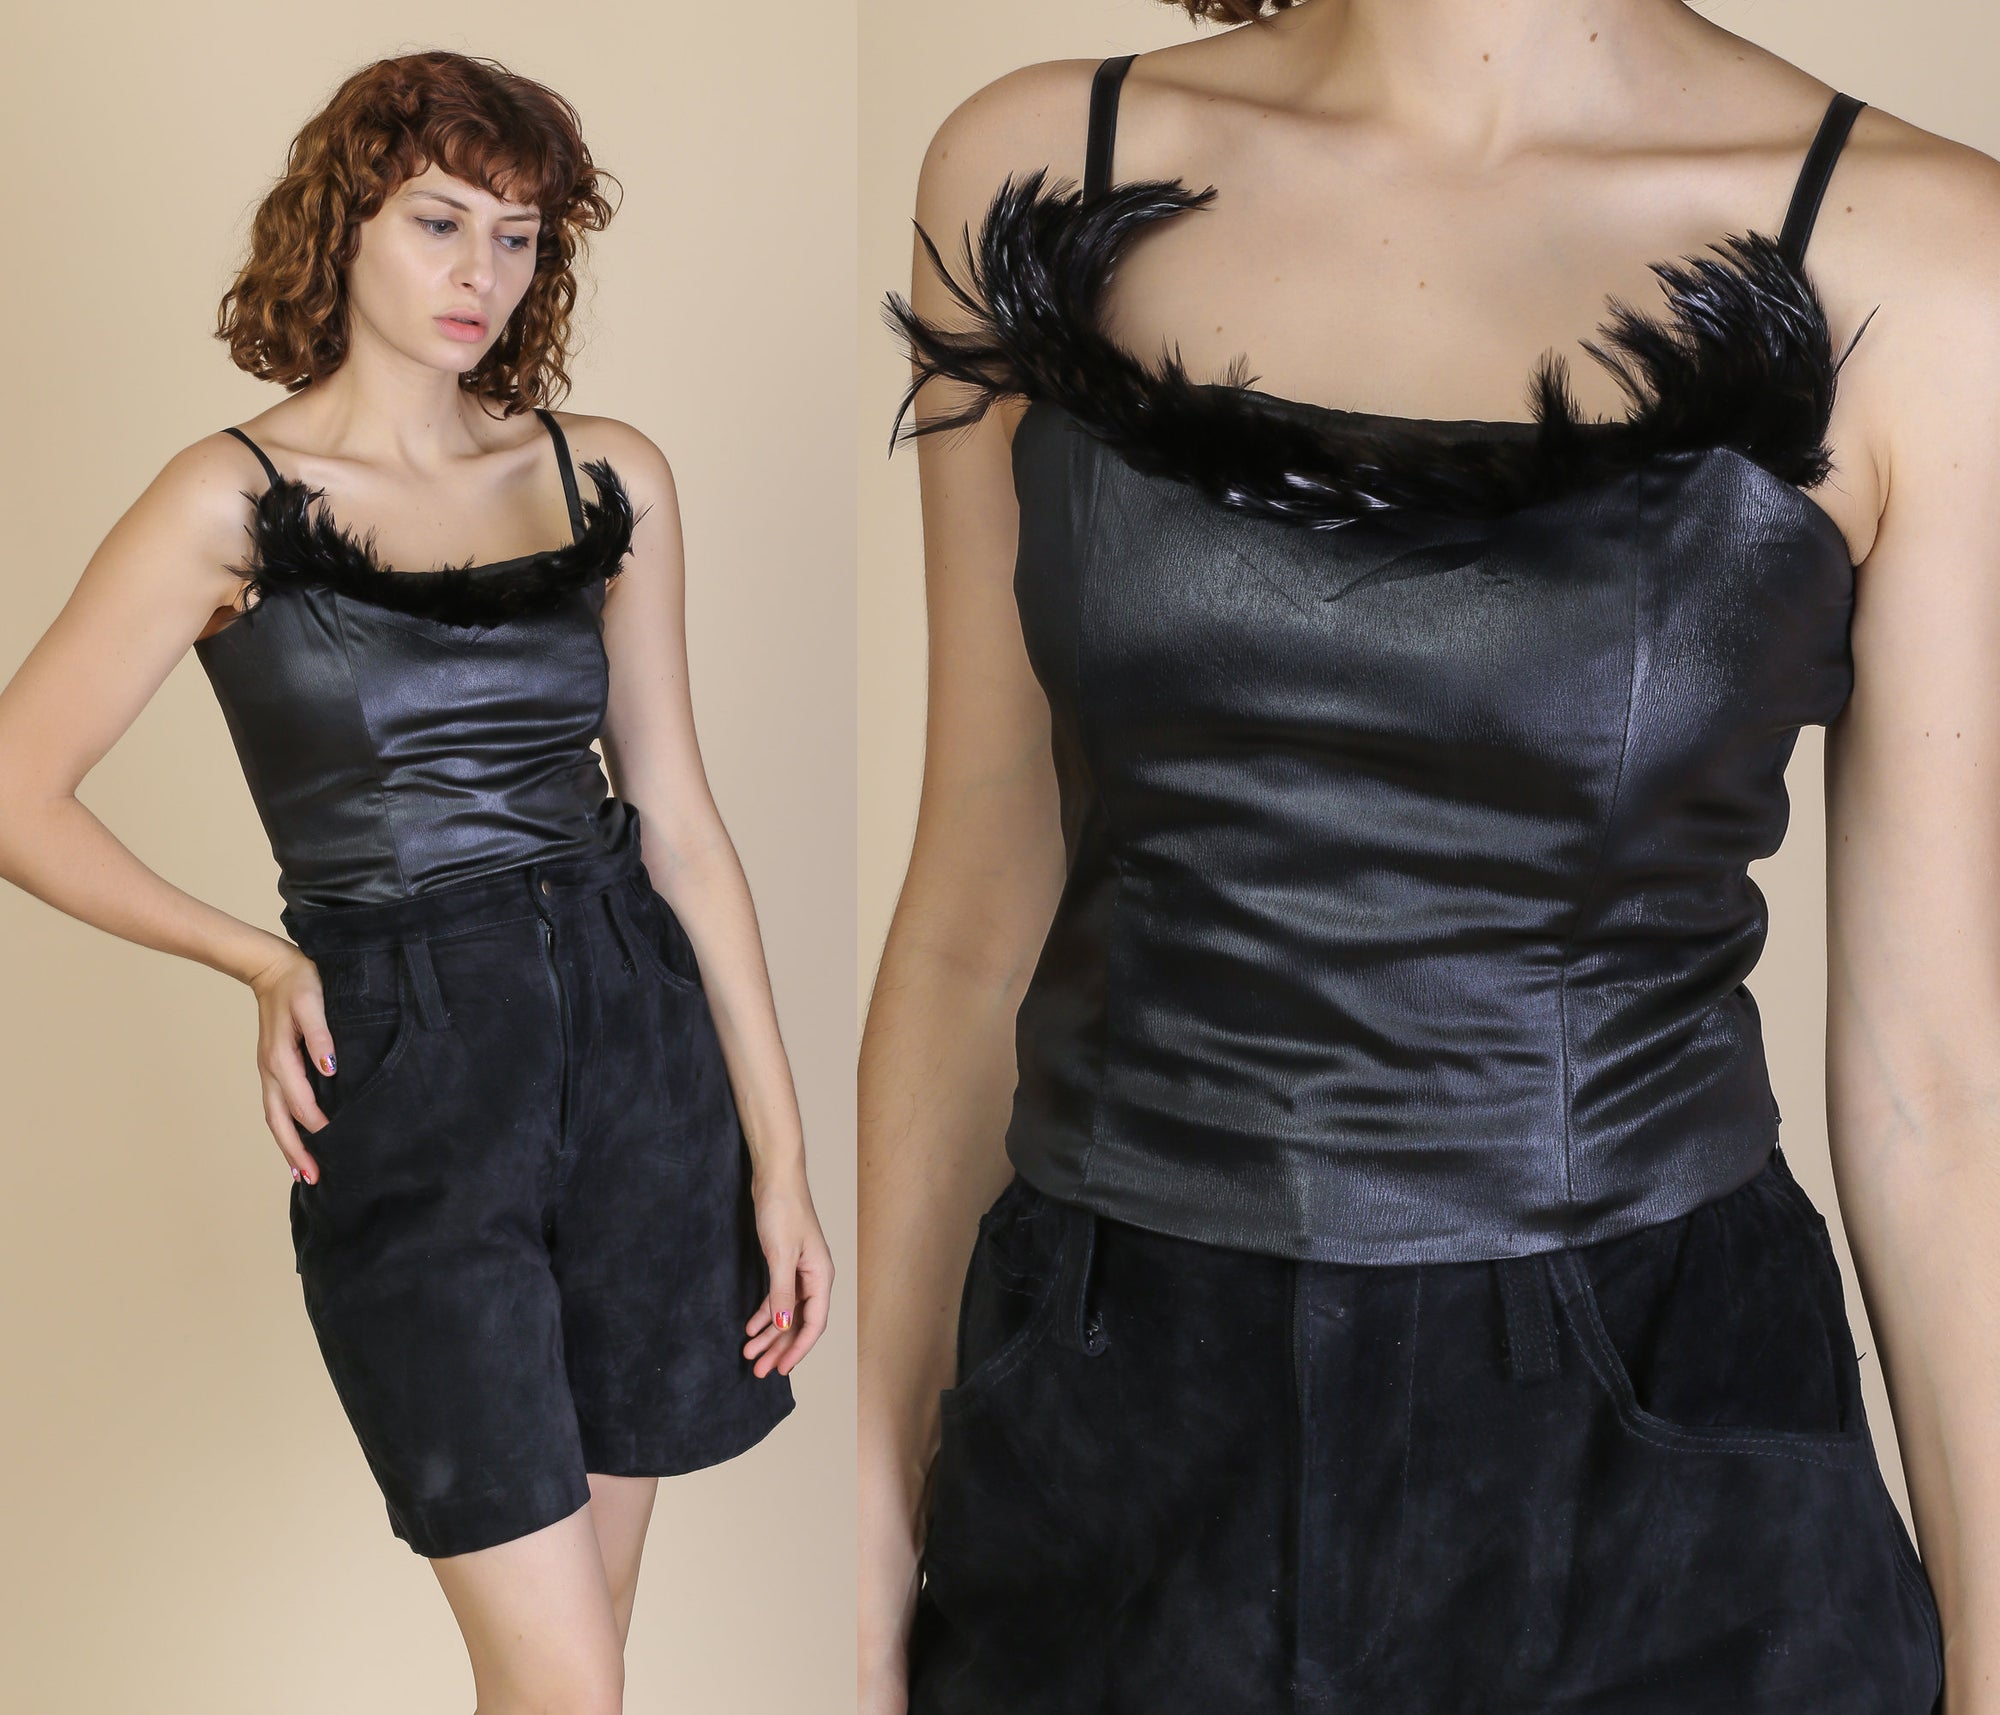 90s Feathered Black Gothic Cami - Medium